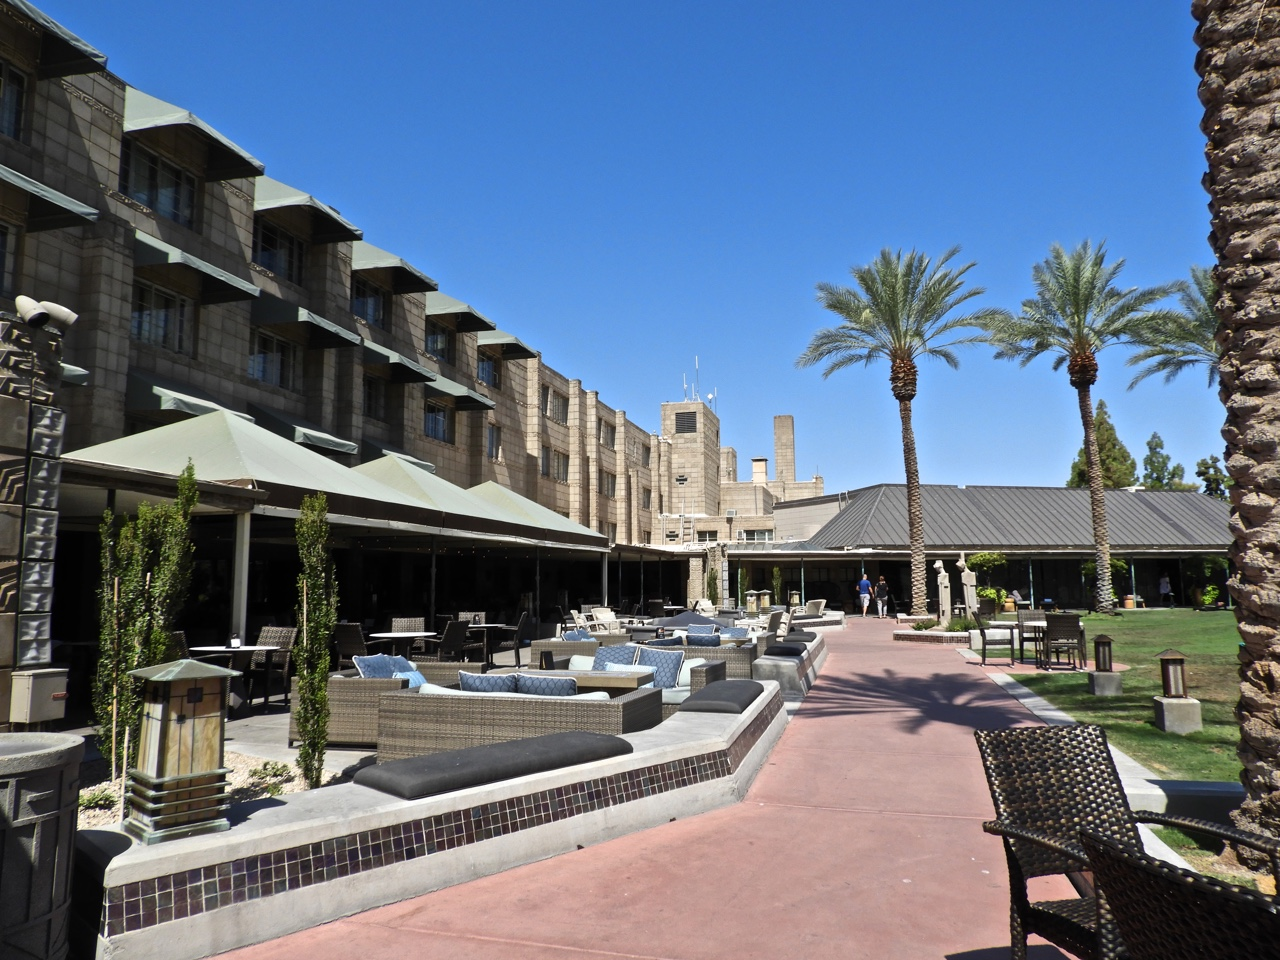 The Arizona Biltmore Hotel Is Part Of Waldorf Astoria Group Which Puts It On List Luxury Hotels Historically Has Hosted Celebrities